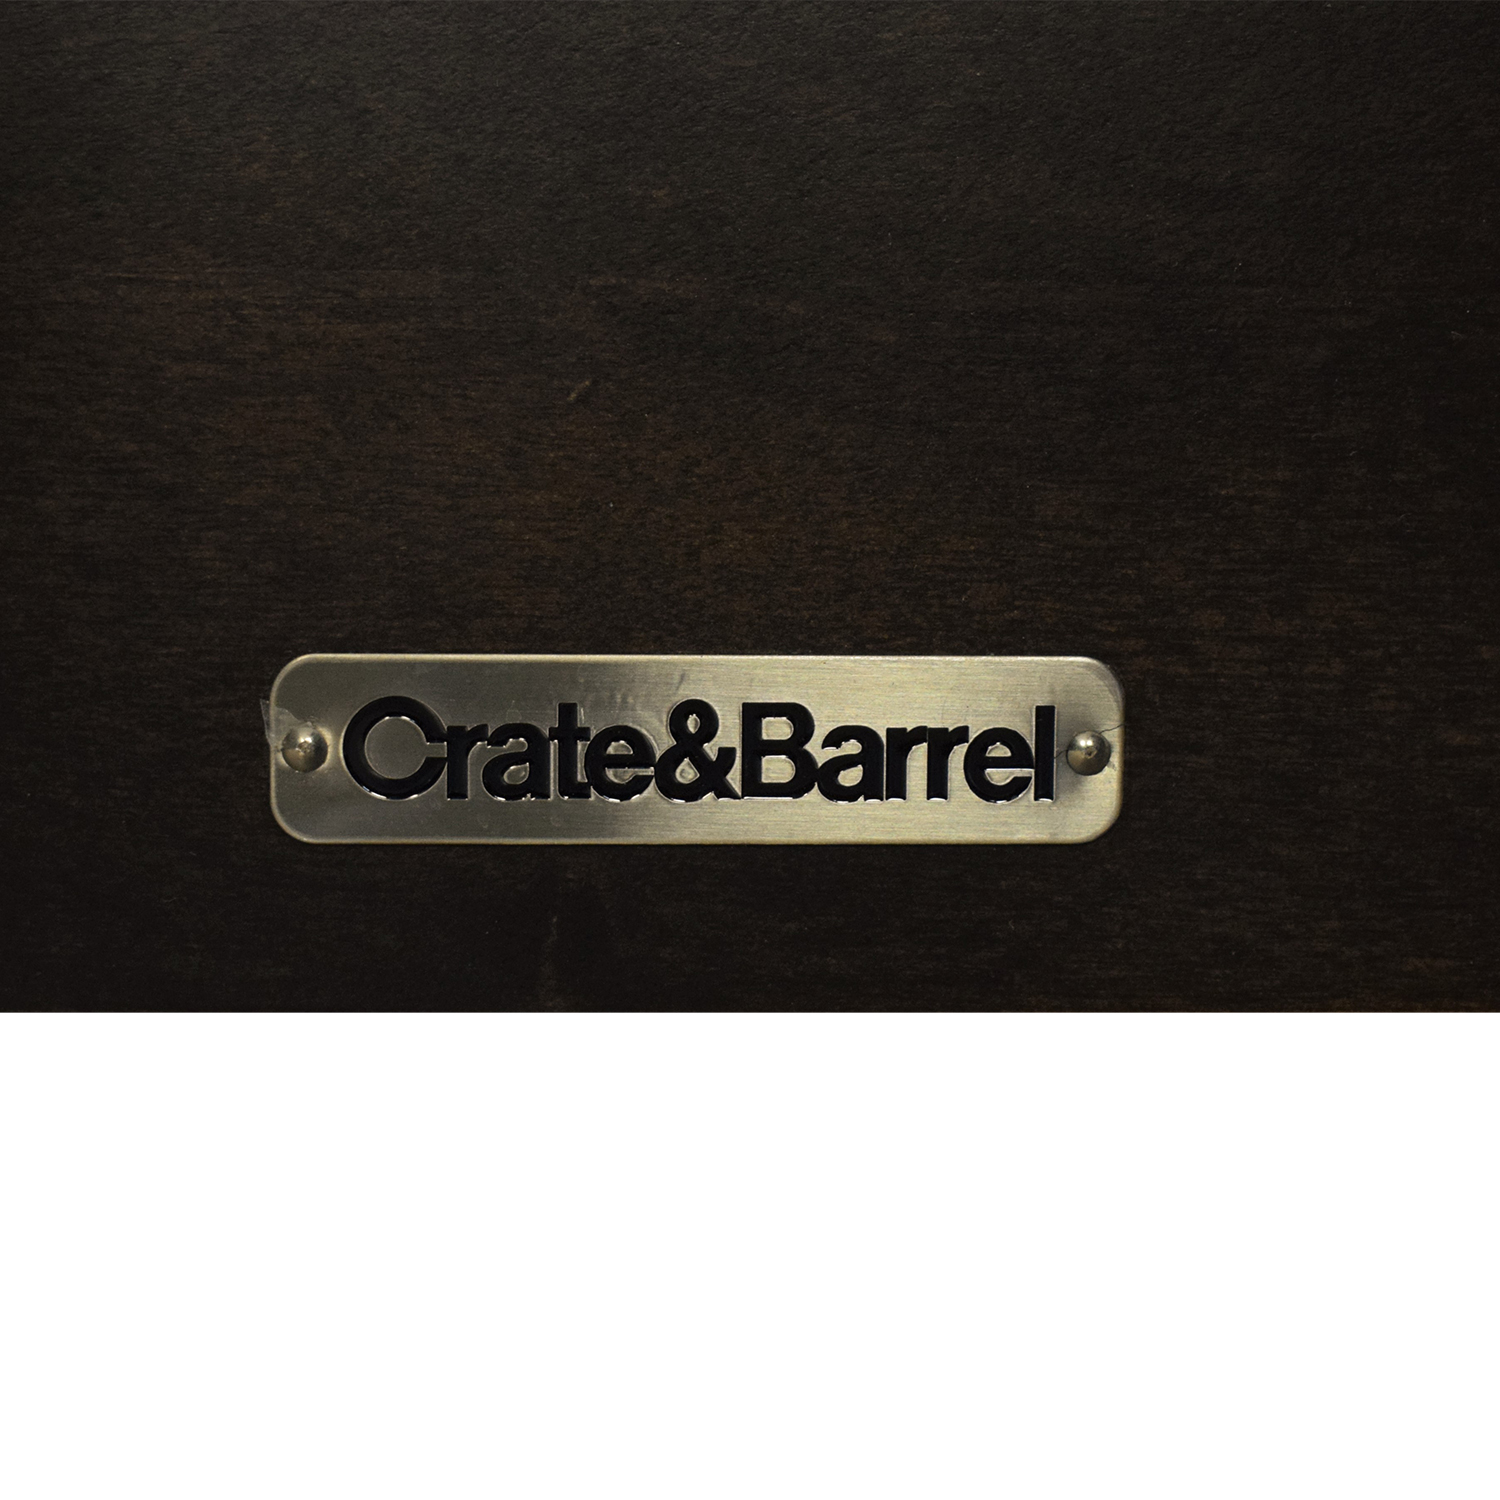 buy Crate & Barrel Master King Bed Crate & Barrel Bed Frames